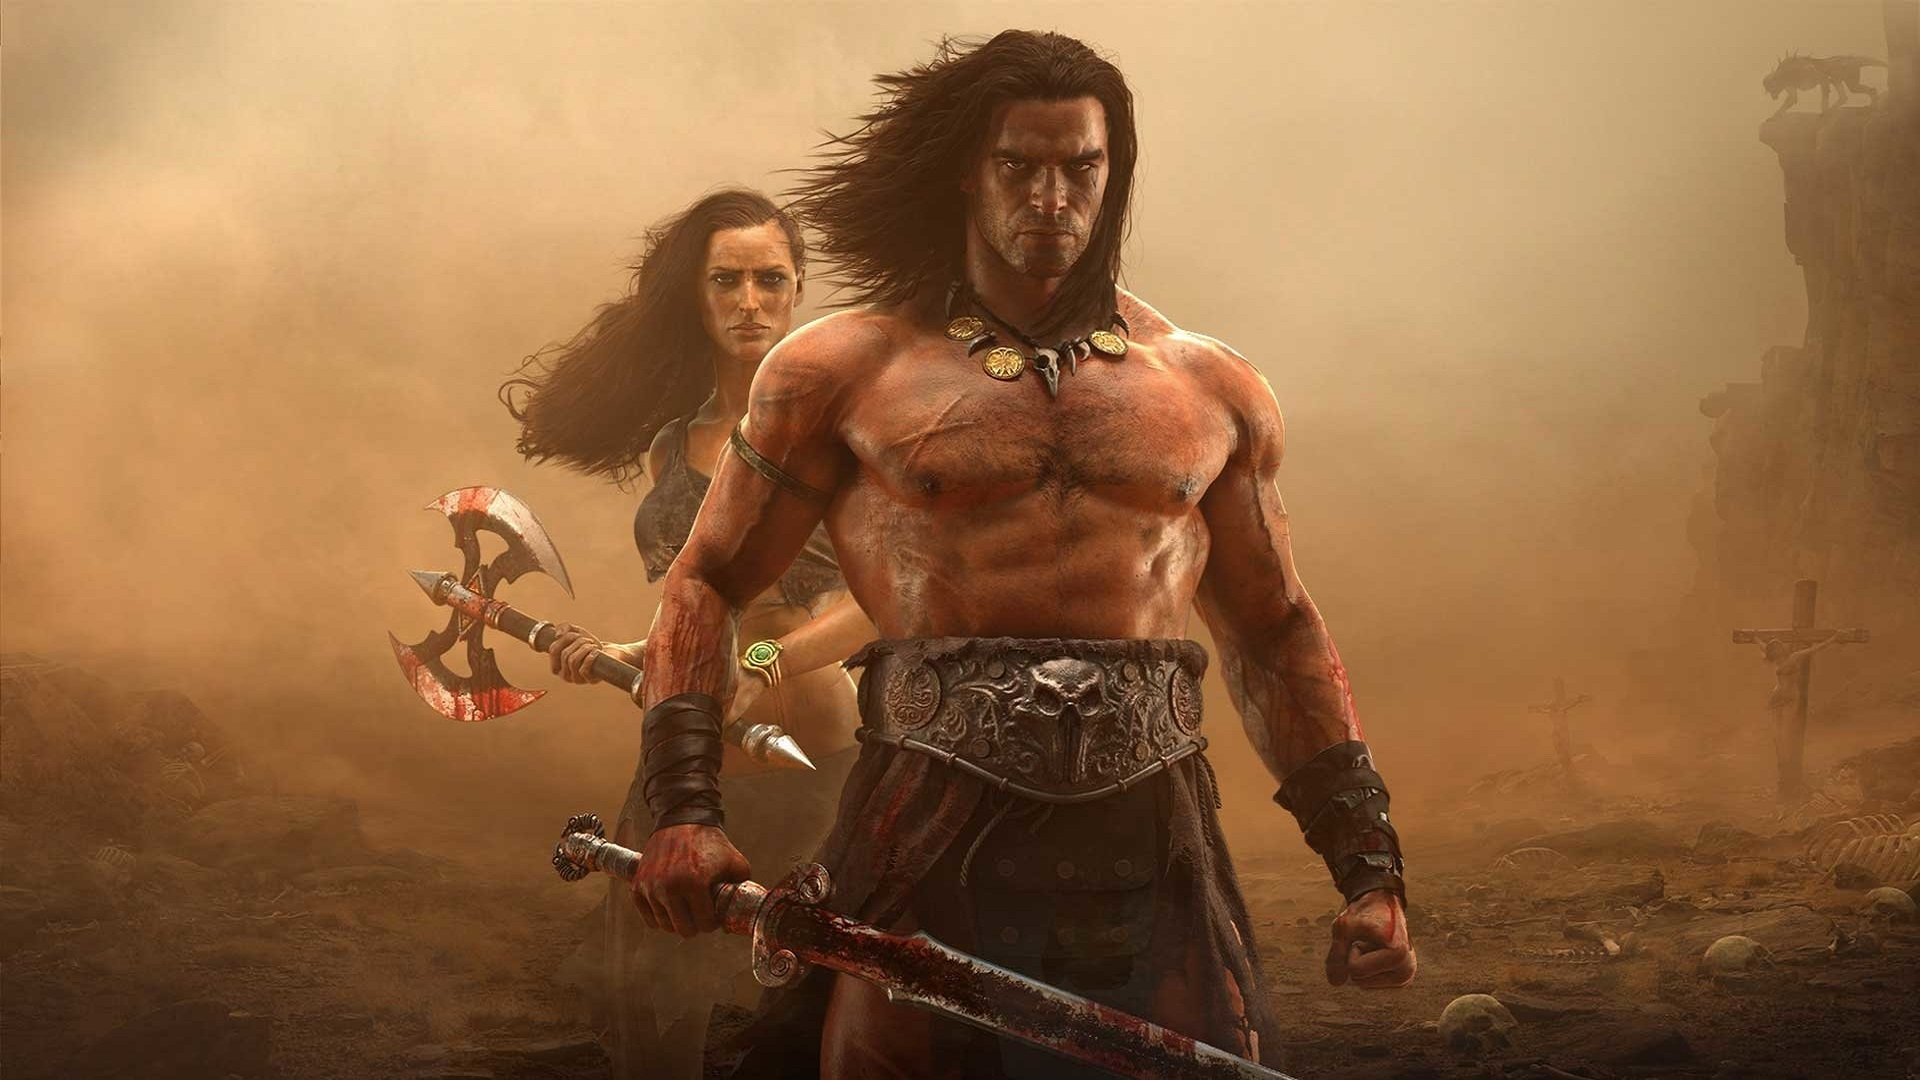 Save Conan Exiles Hd Wallpapers 1920x1080 Read Games